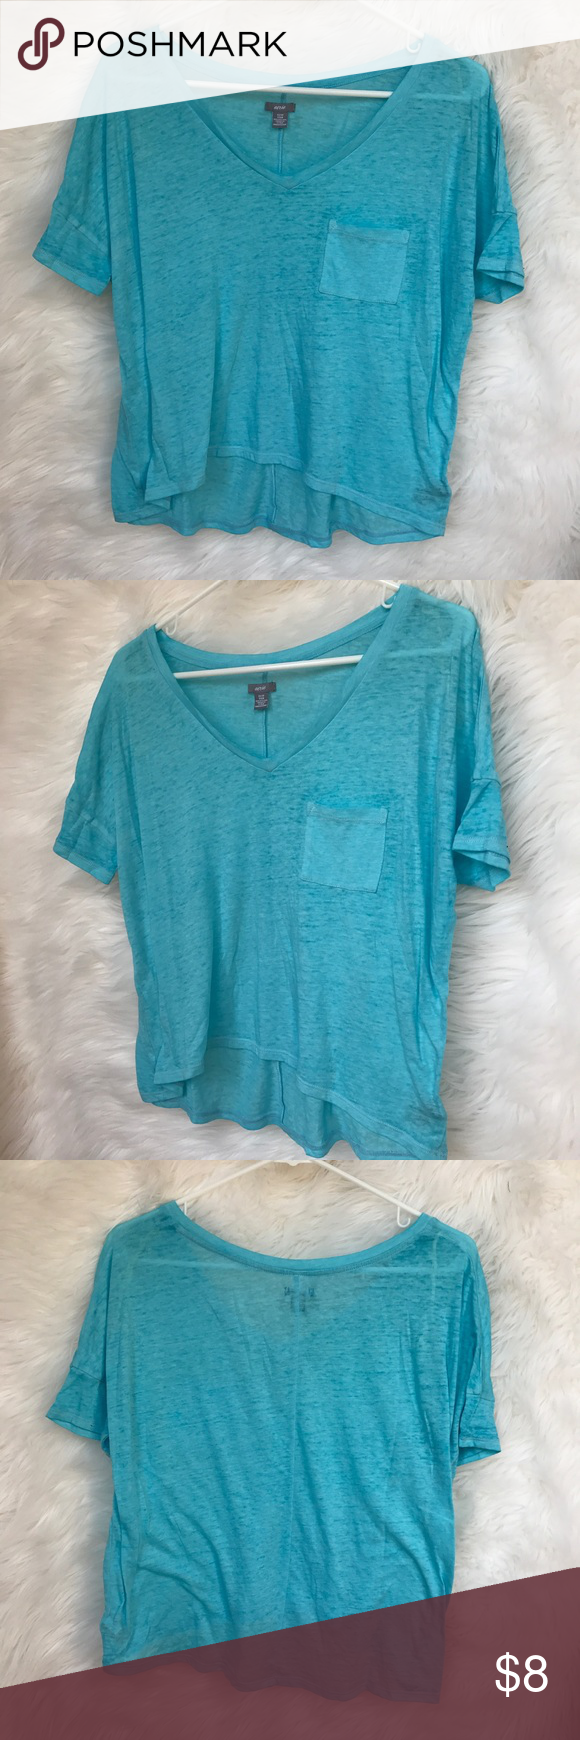 Aerie V-Neck Pocket T-Shirt Aerie Light Blue V-Neck Pocket T-Shirt. T-Shirt is a size extra small. It has only been worn a few times and is still in excellent condition! Shirt is a very light material that is perfect for summertime! Open to offers! 🌸 aerie Tops Tees - Short Sleeve